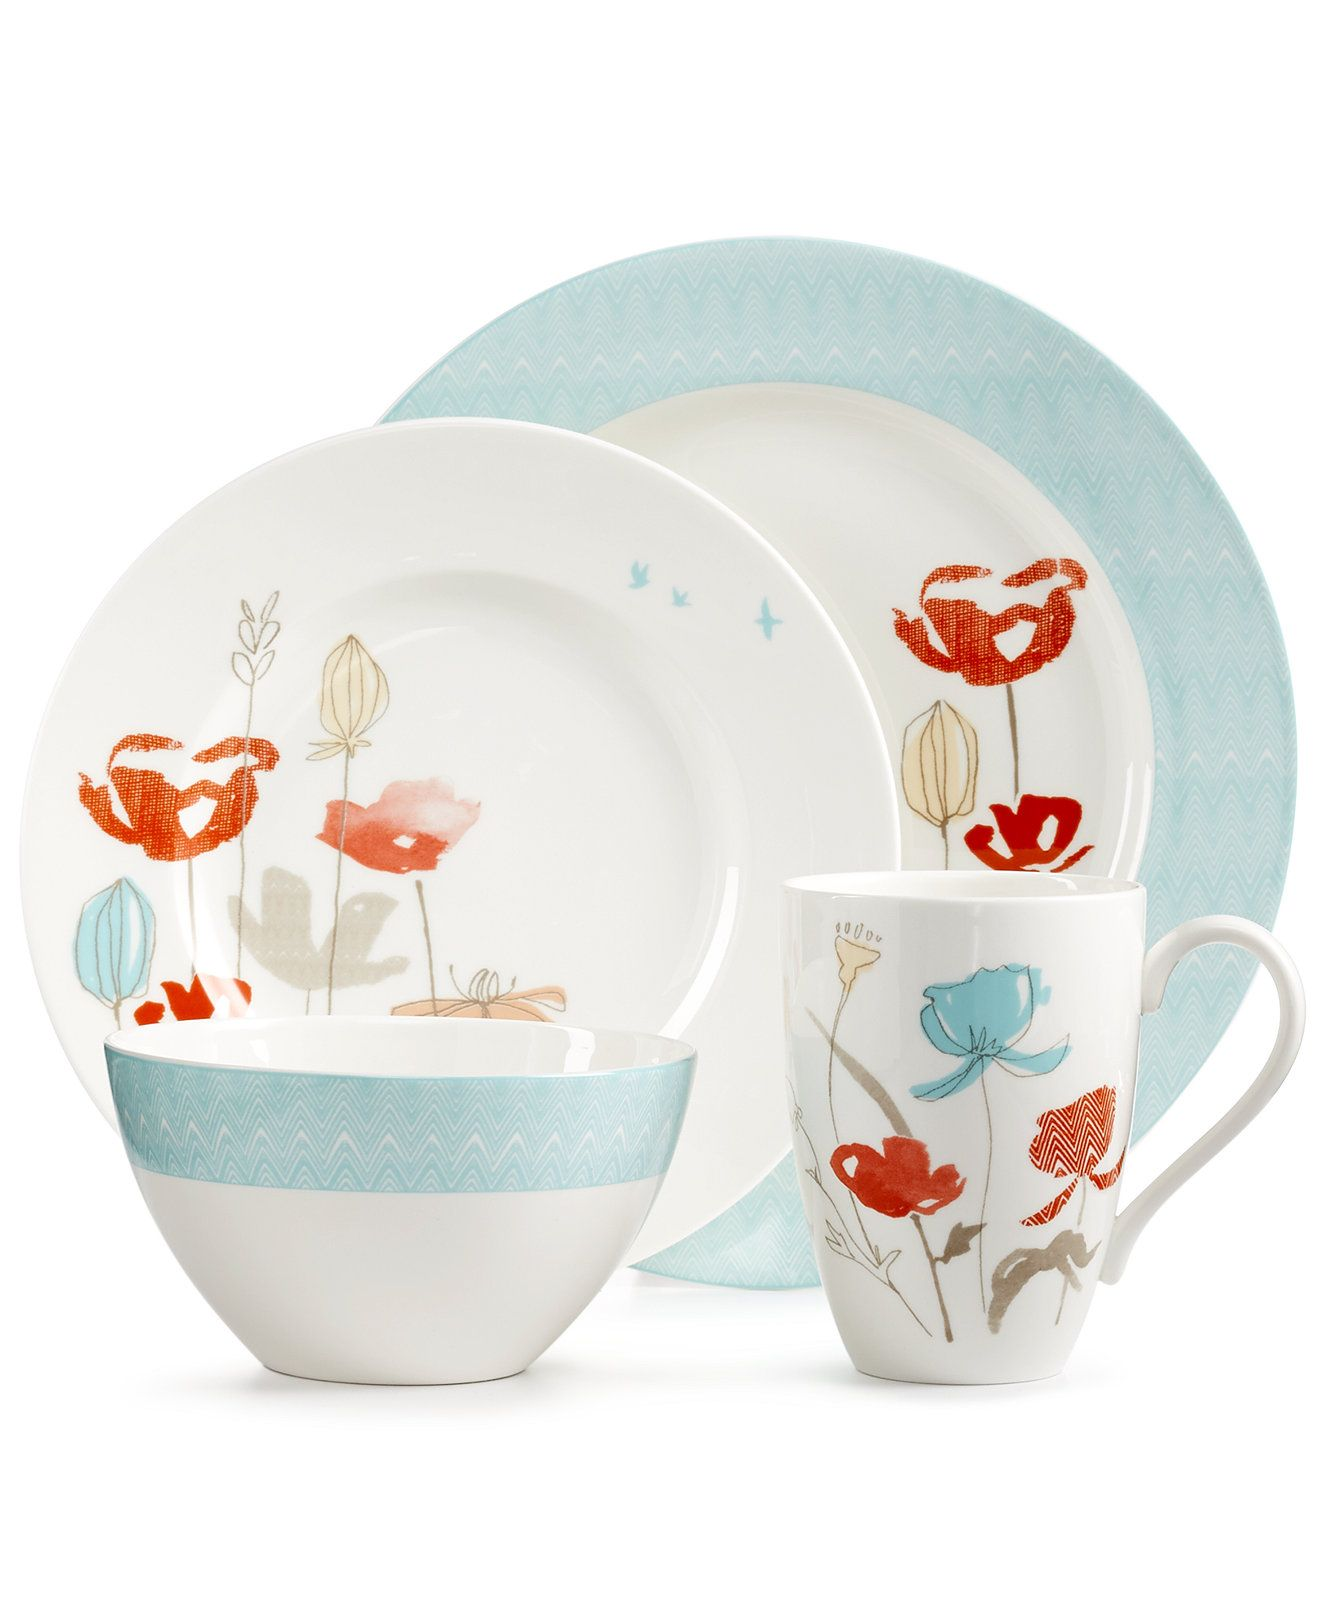 Lenox Poppy Street Bay 4 Piece Place Setting - Dinnerware - Dining u0026 Entertaining - Macyu0027s  sc 1 st  Pinterest & Lenox Poppy Street Bay 4 Piece Place Setting - Dinnerware - Dining ...